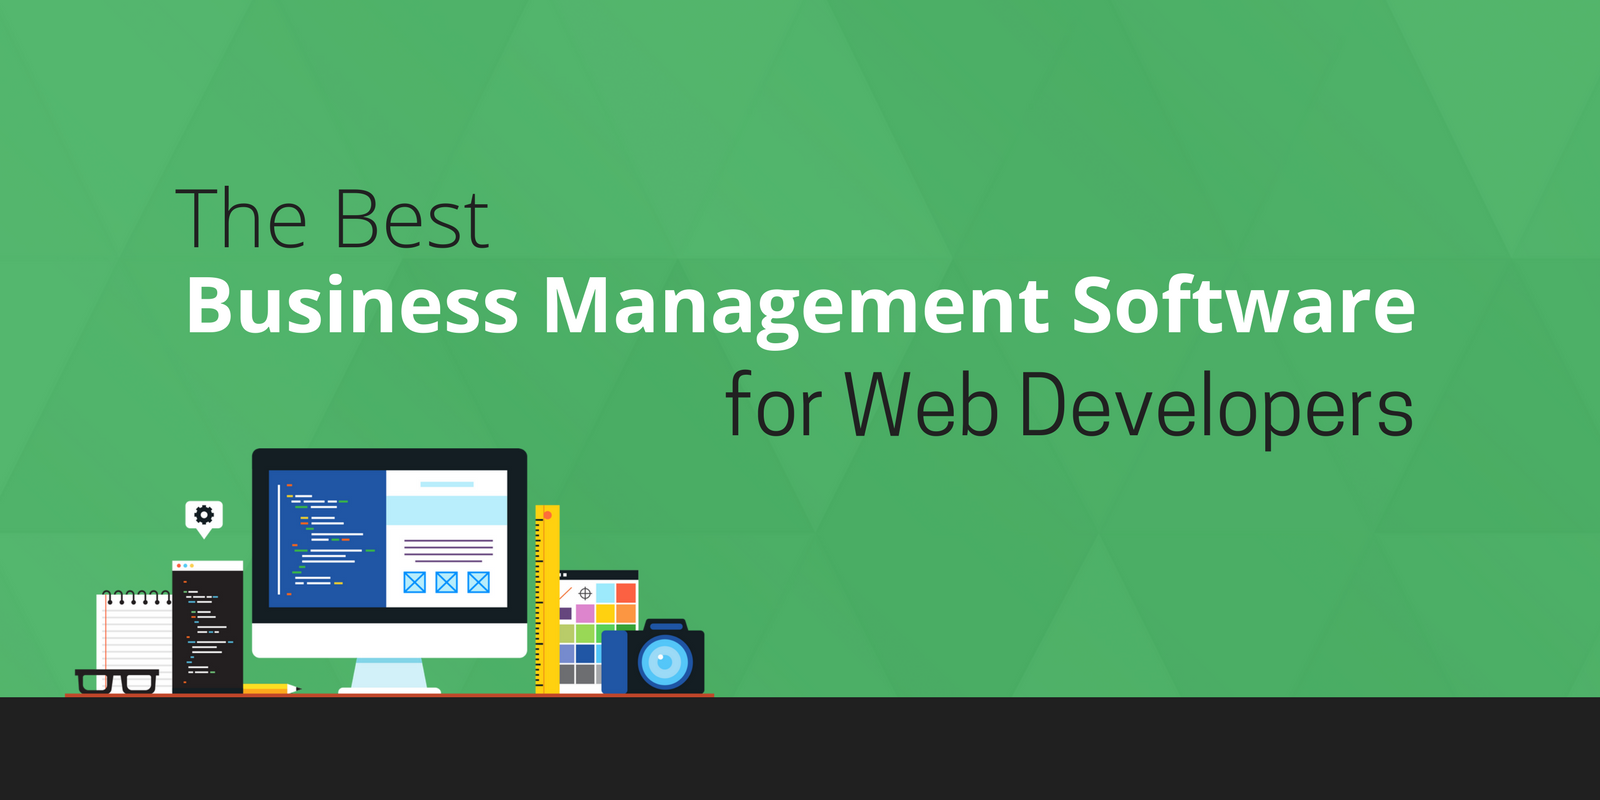 The Best Business Management Software for Web Developers (1).png